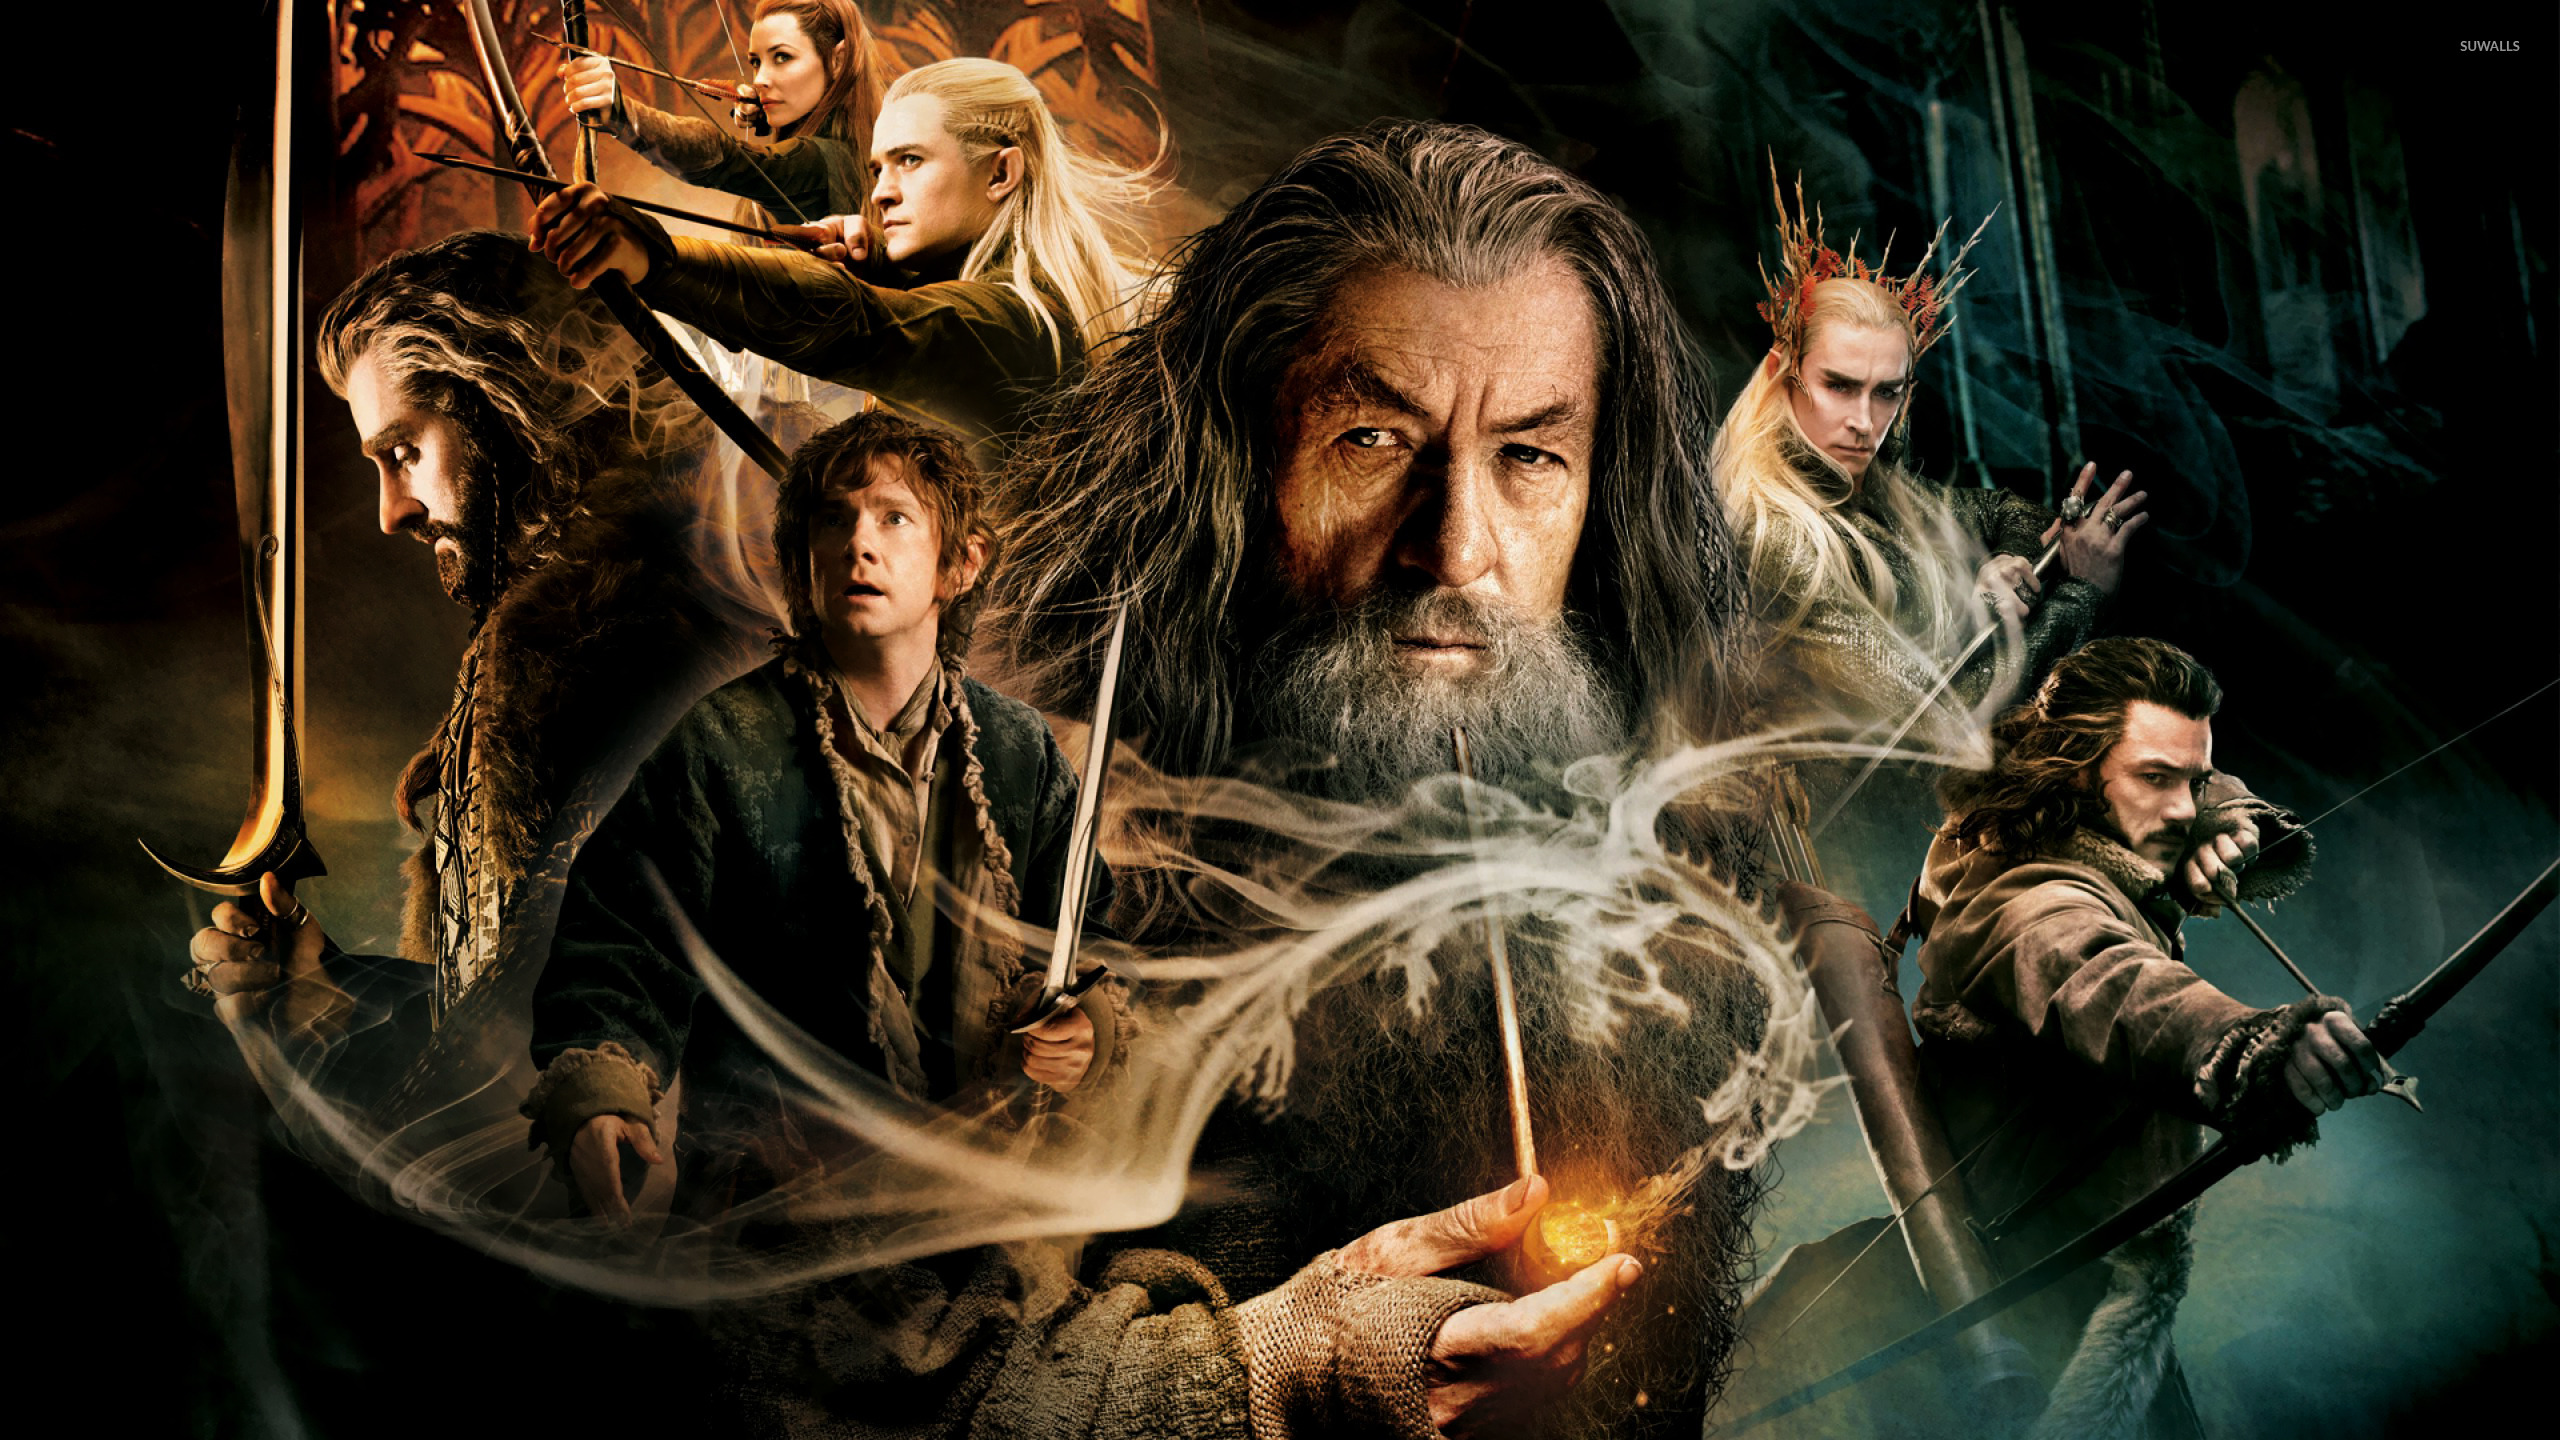 The Hobbit The Desolation of Smaug wallpaper   Movie wallpapers 1366x768